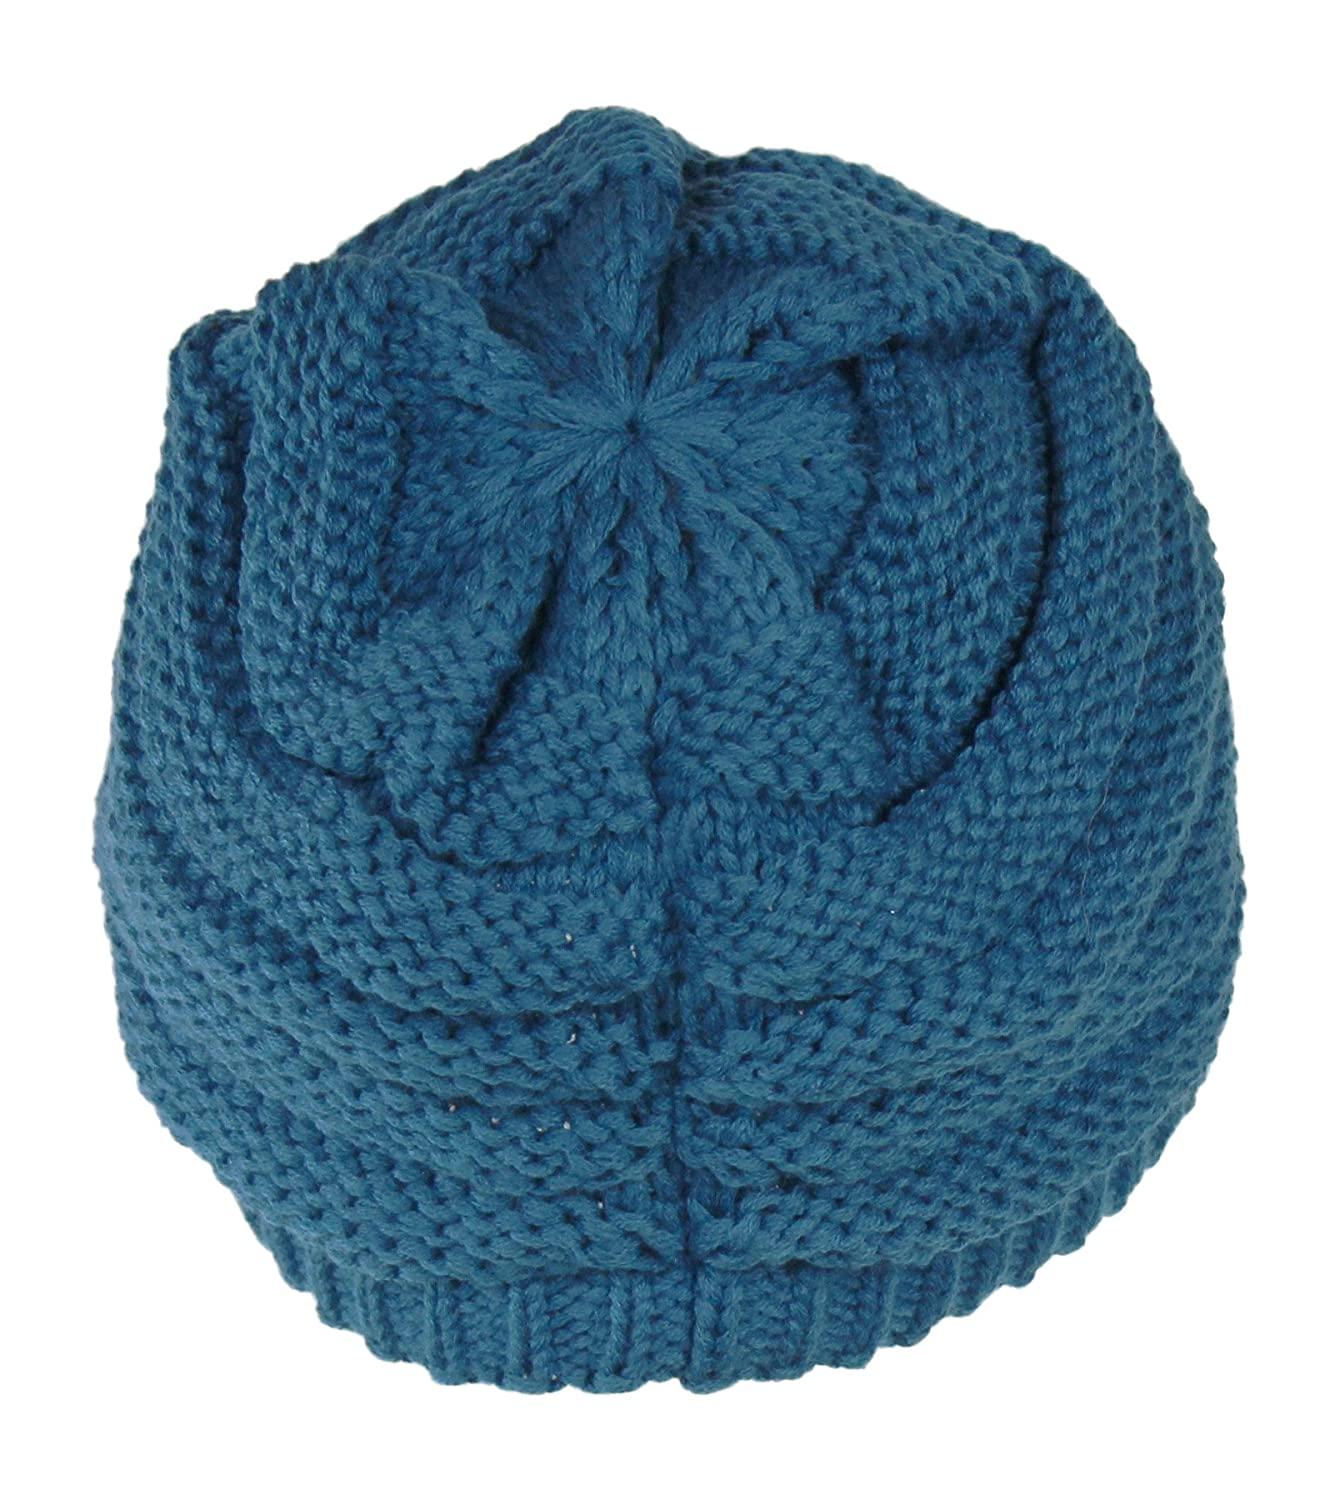 f2d795a3302 Warm Cable Ribbed Knit Beanie Hat w   Visor Brim – Chunky Winter ...